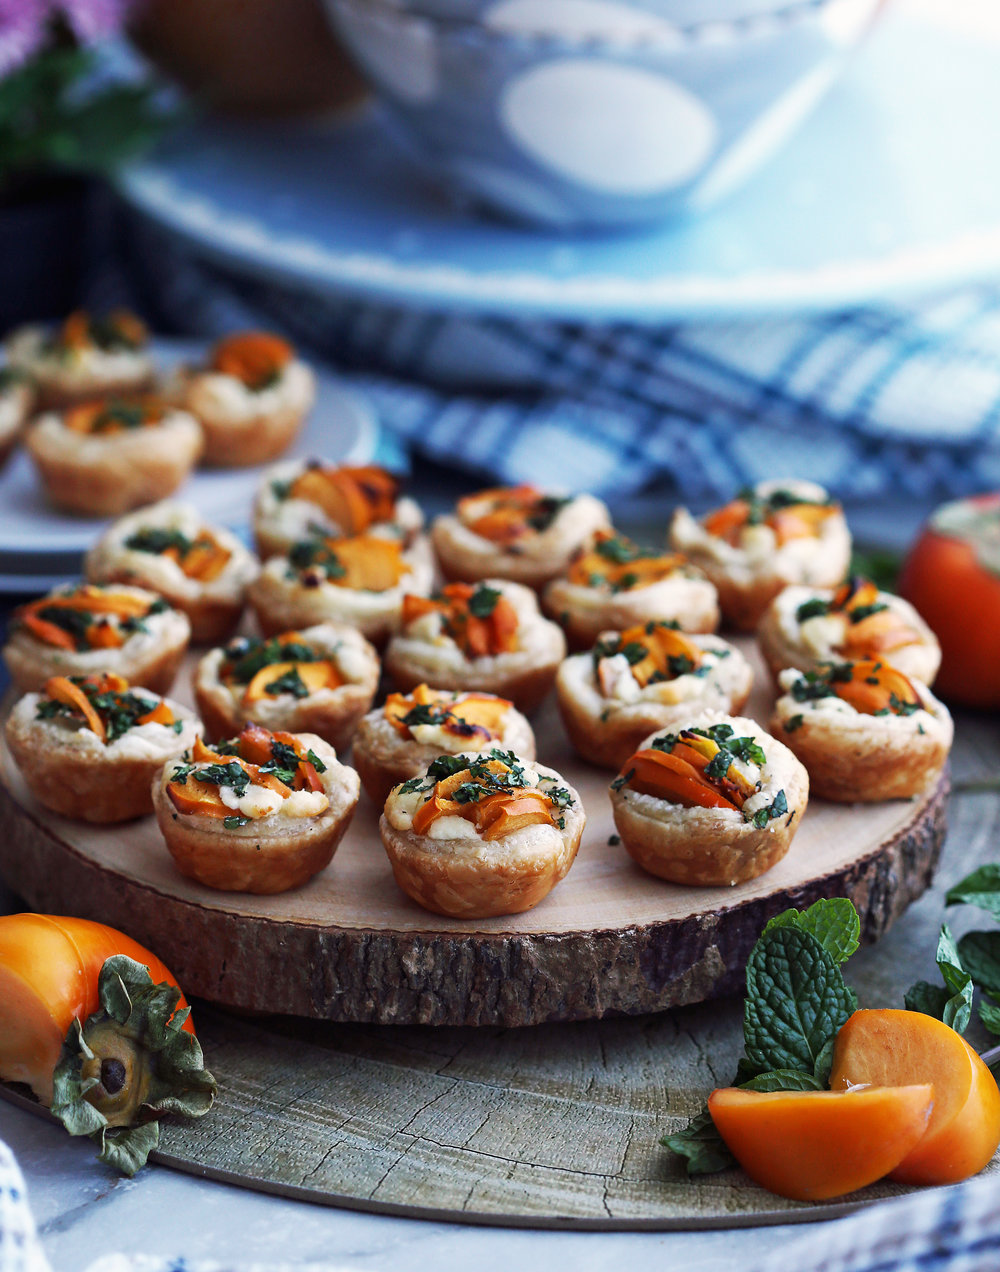 Over a dozen Persimmon Goat Cheese Tartlets garnished with fresh mint on a wooden platter.